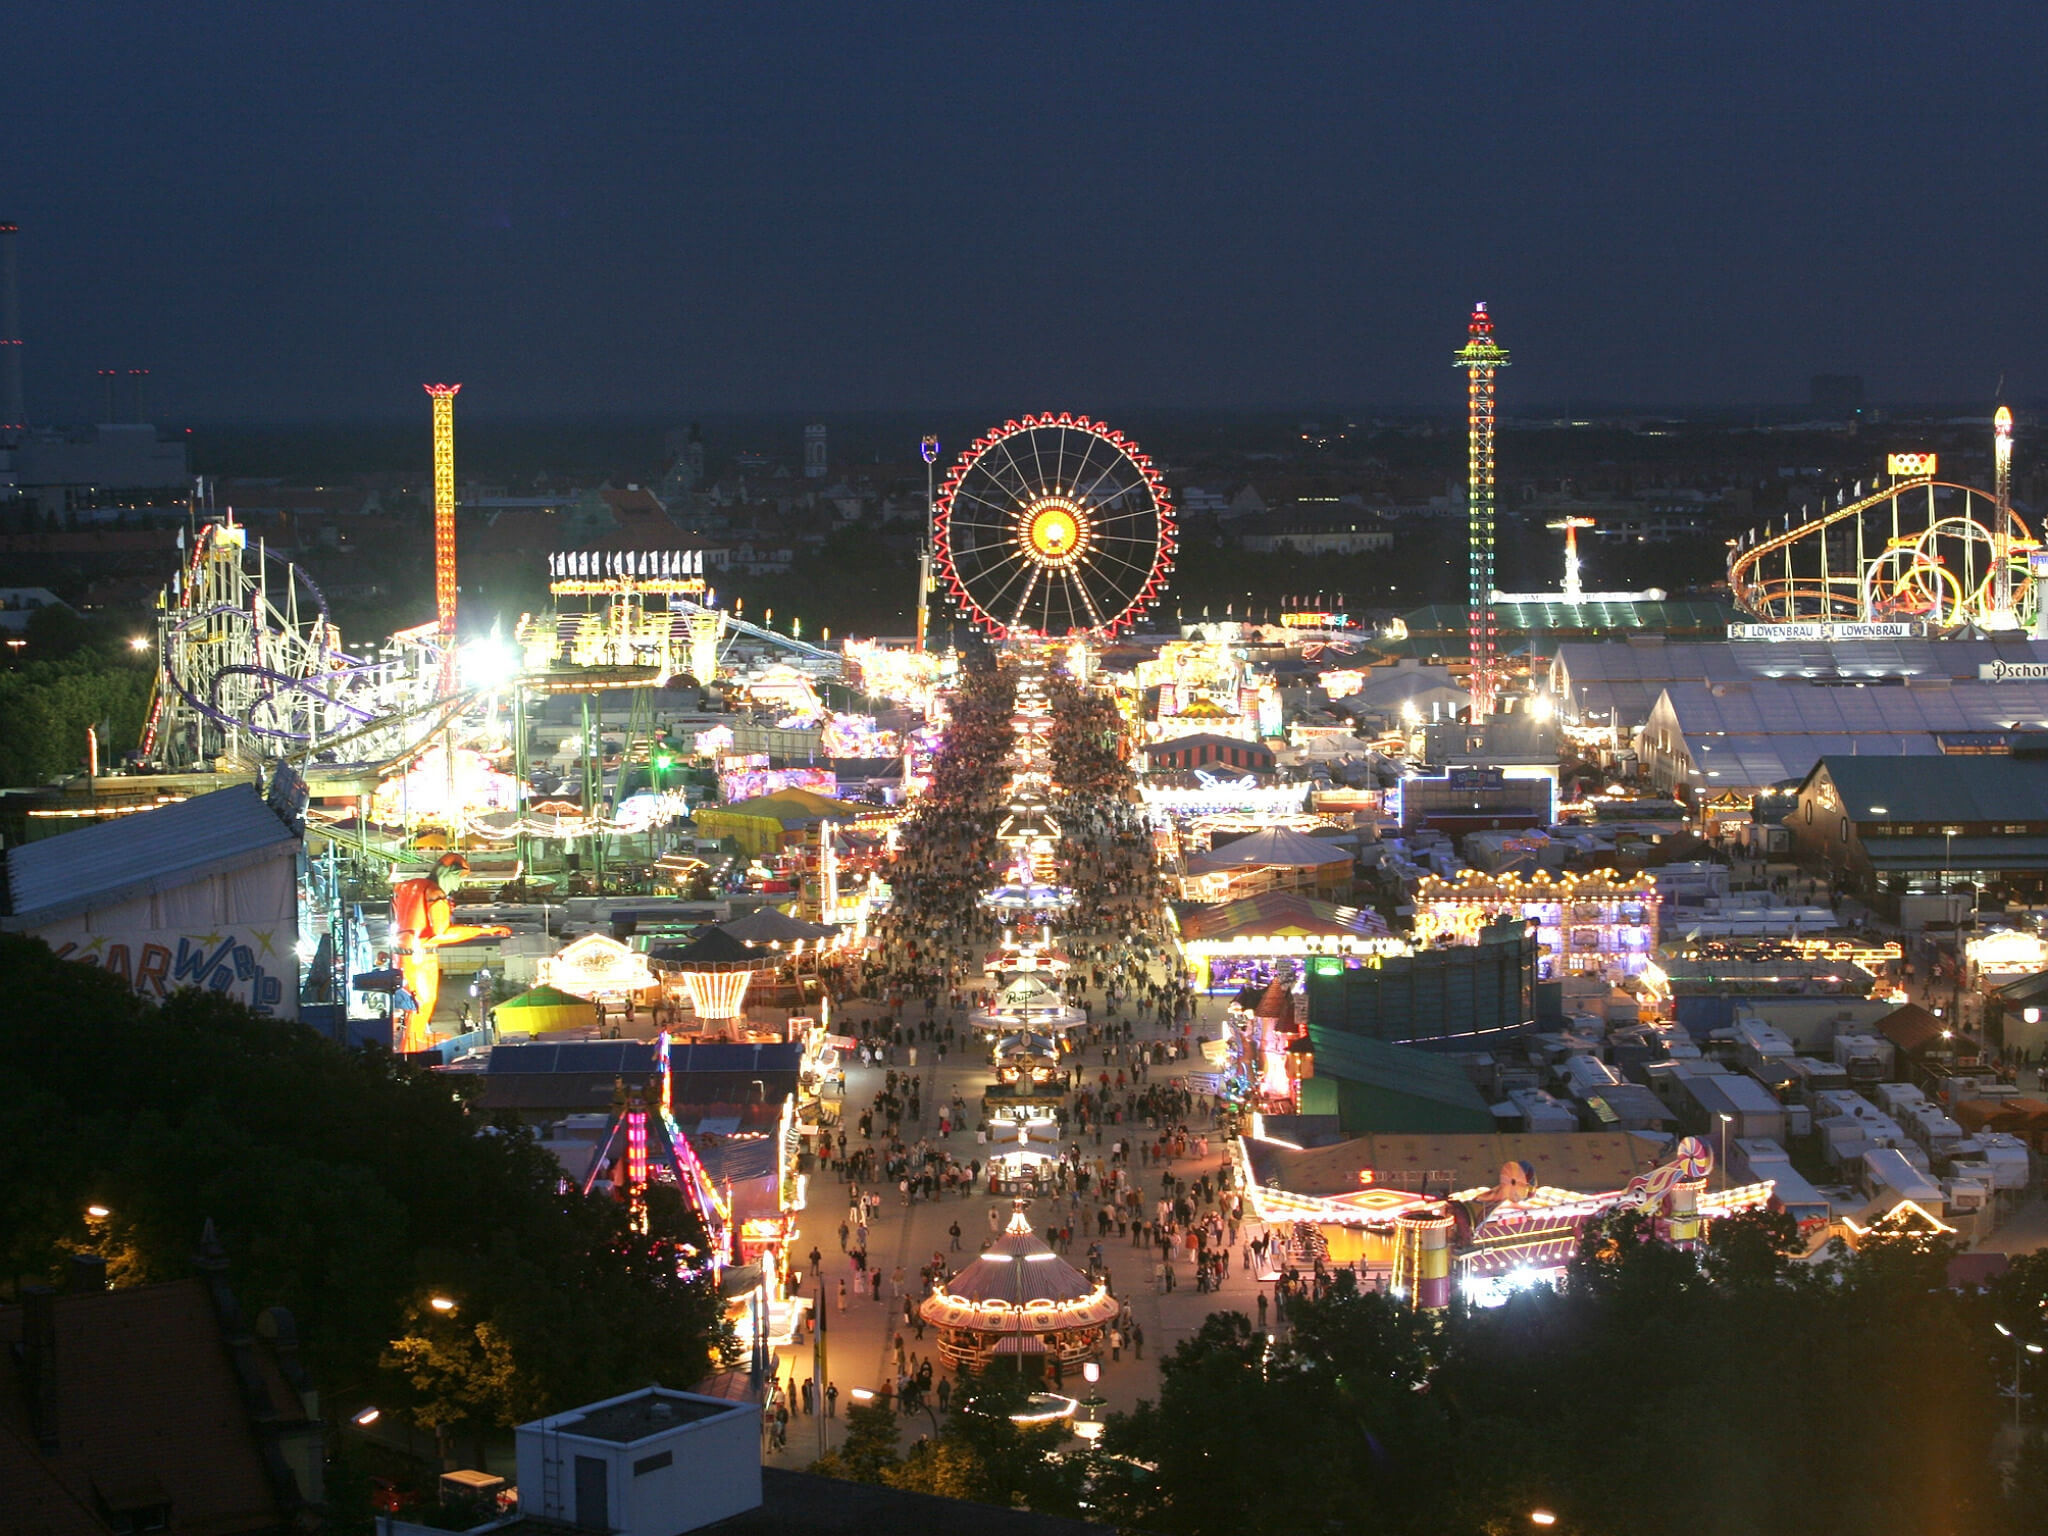 Marvel at the Oktoberfest by night - Sheraton Munich Westpark hotel